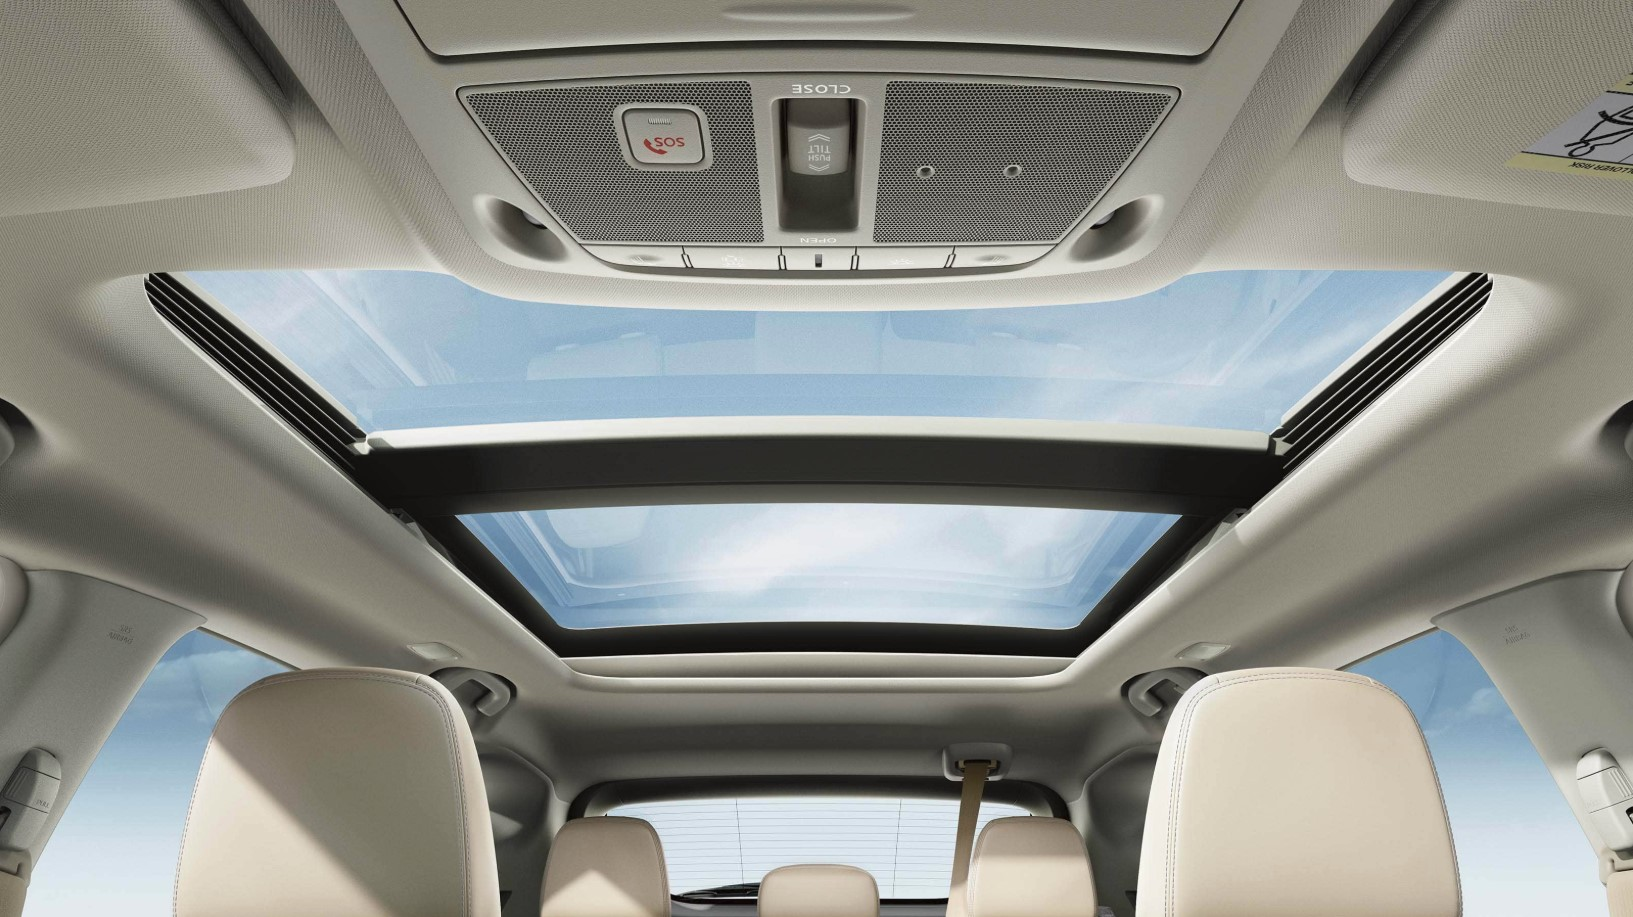 2019 Murano Sunroof